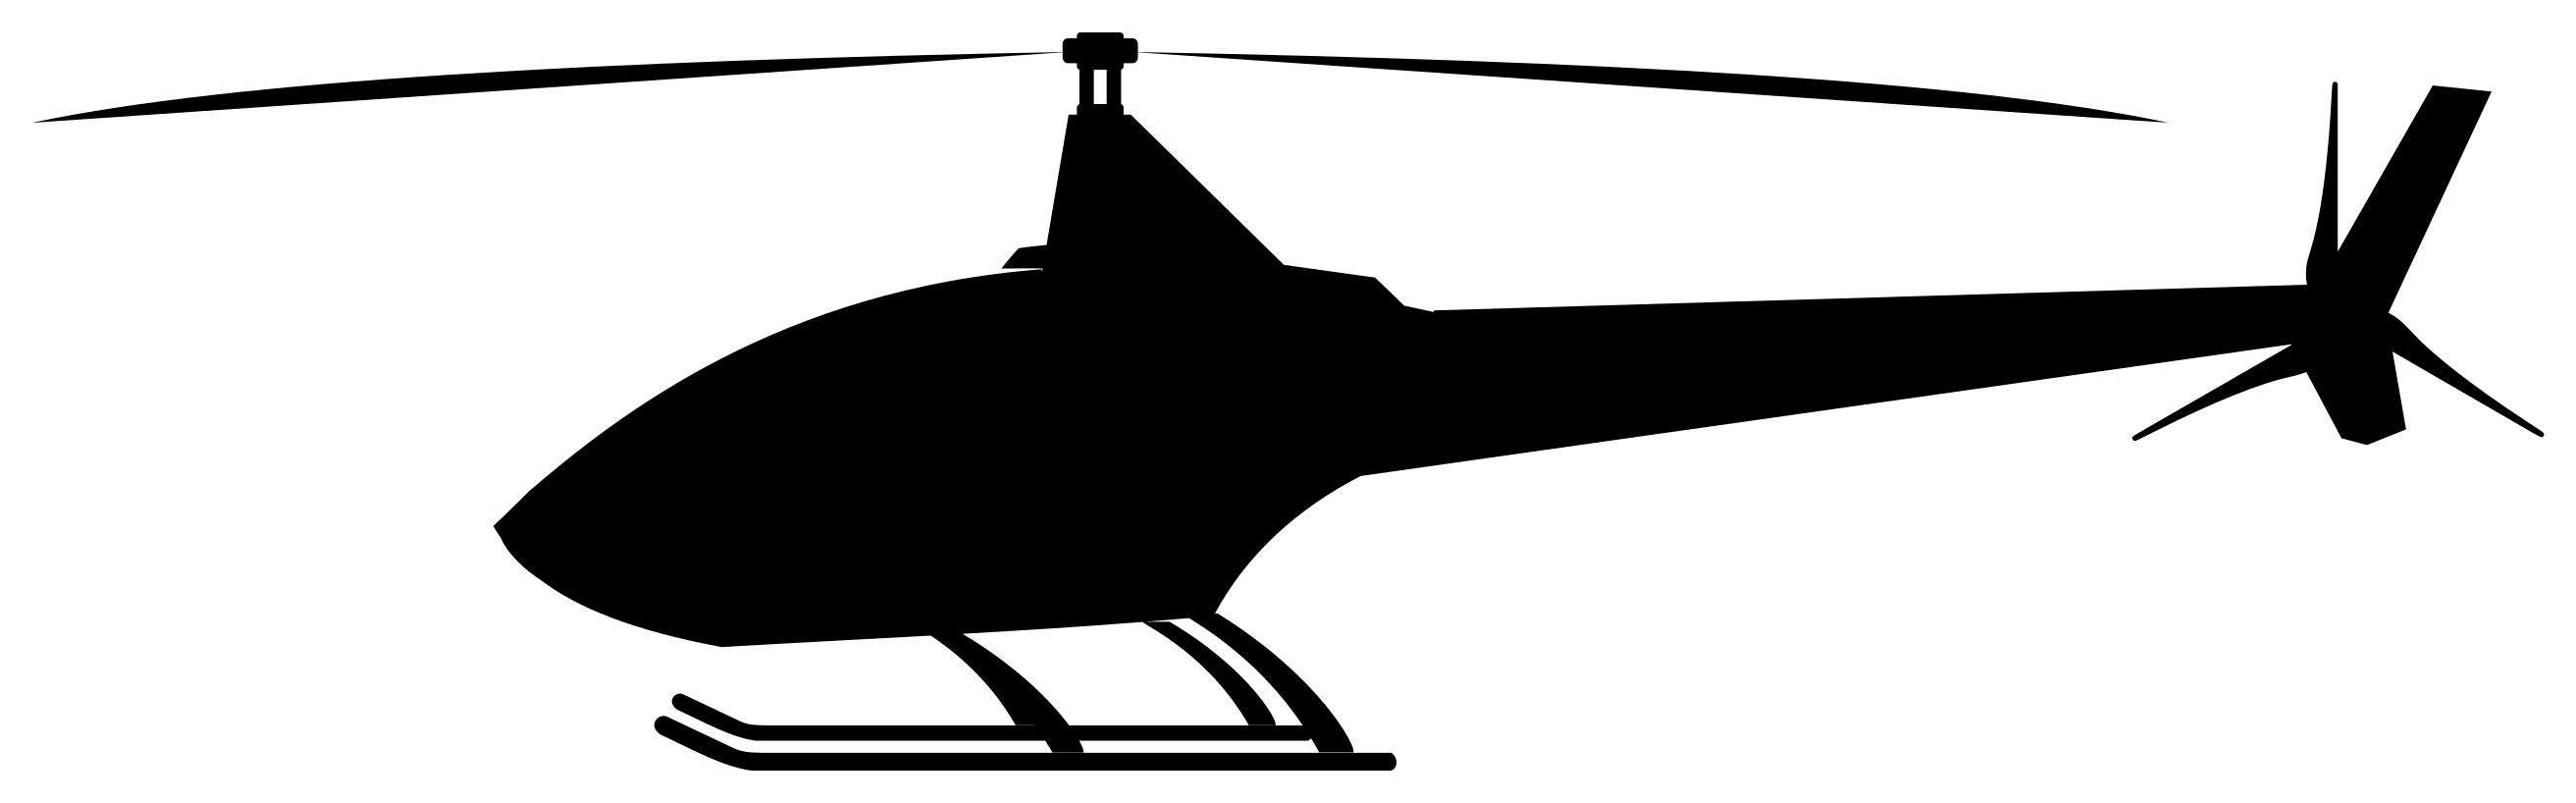 2625x818 Helicopter Clipart By Dg Ra Silhouette Clipart